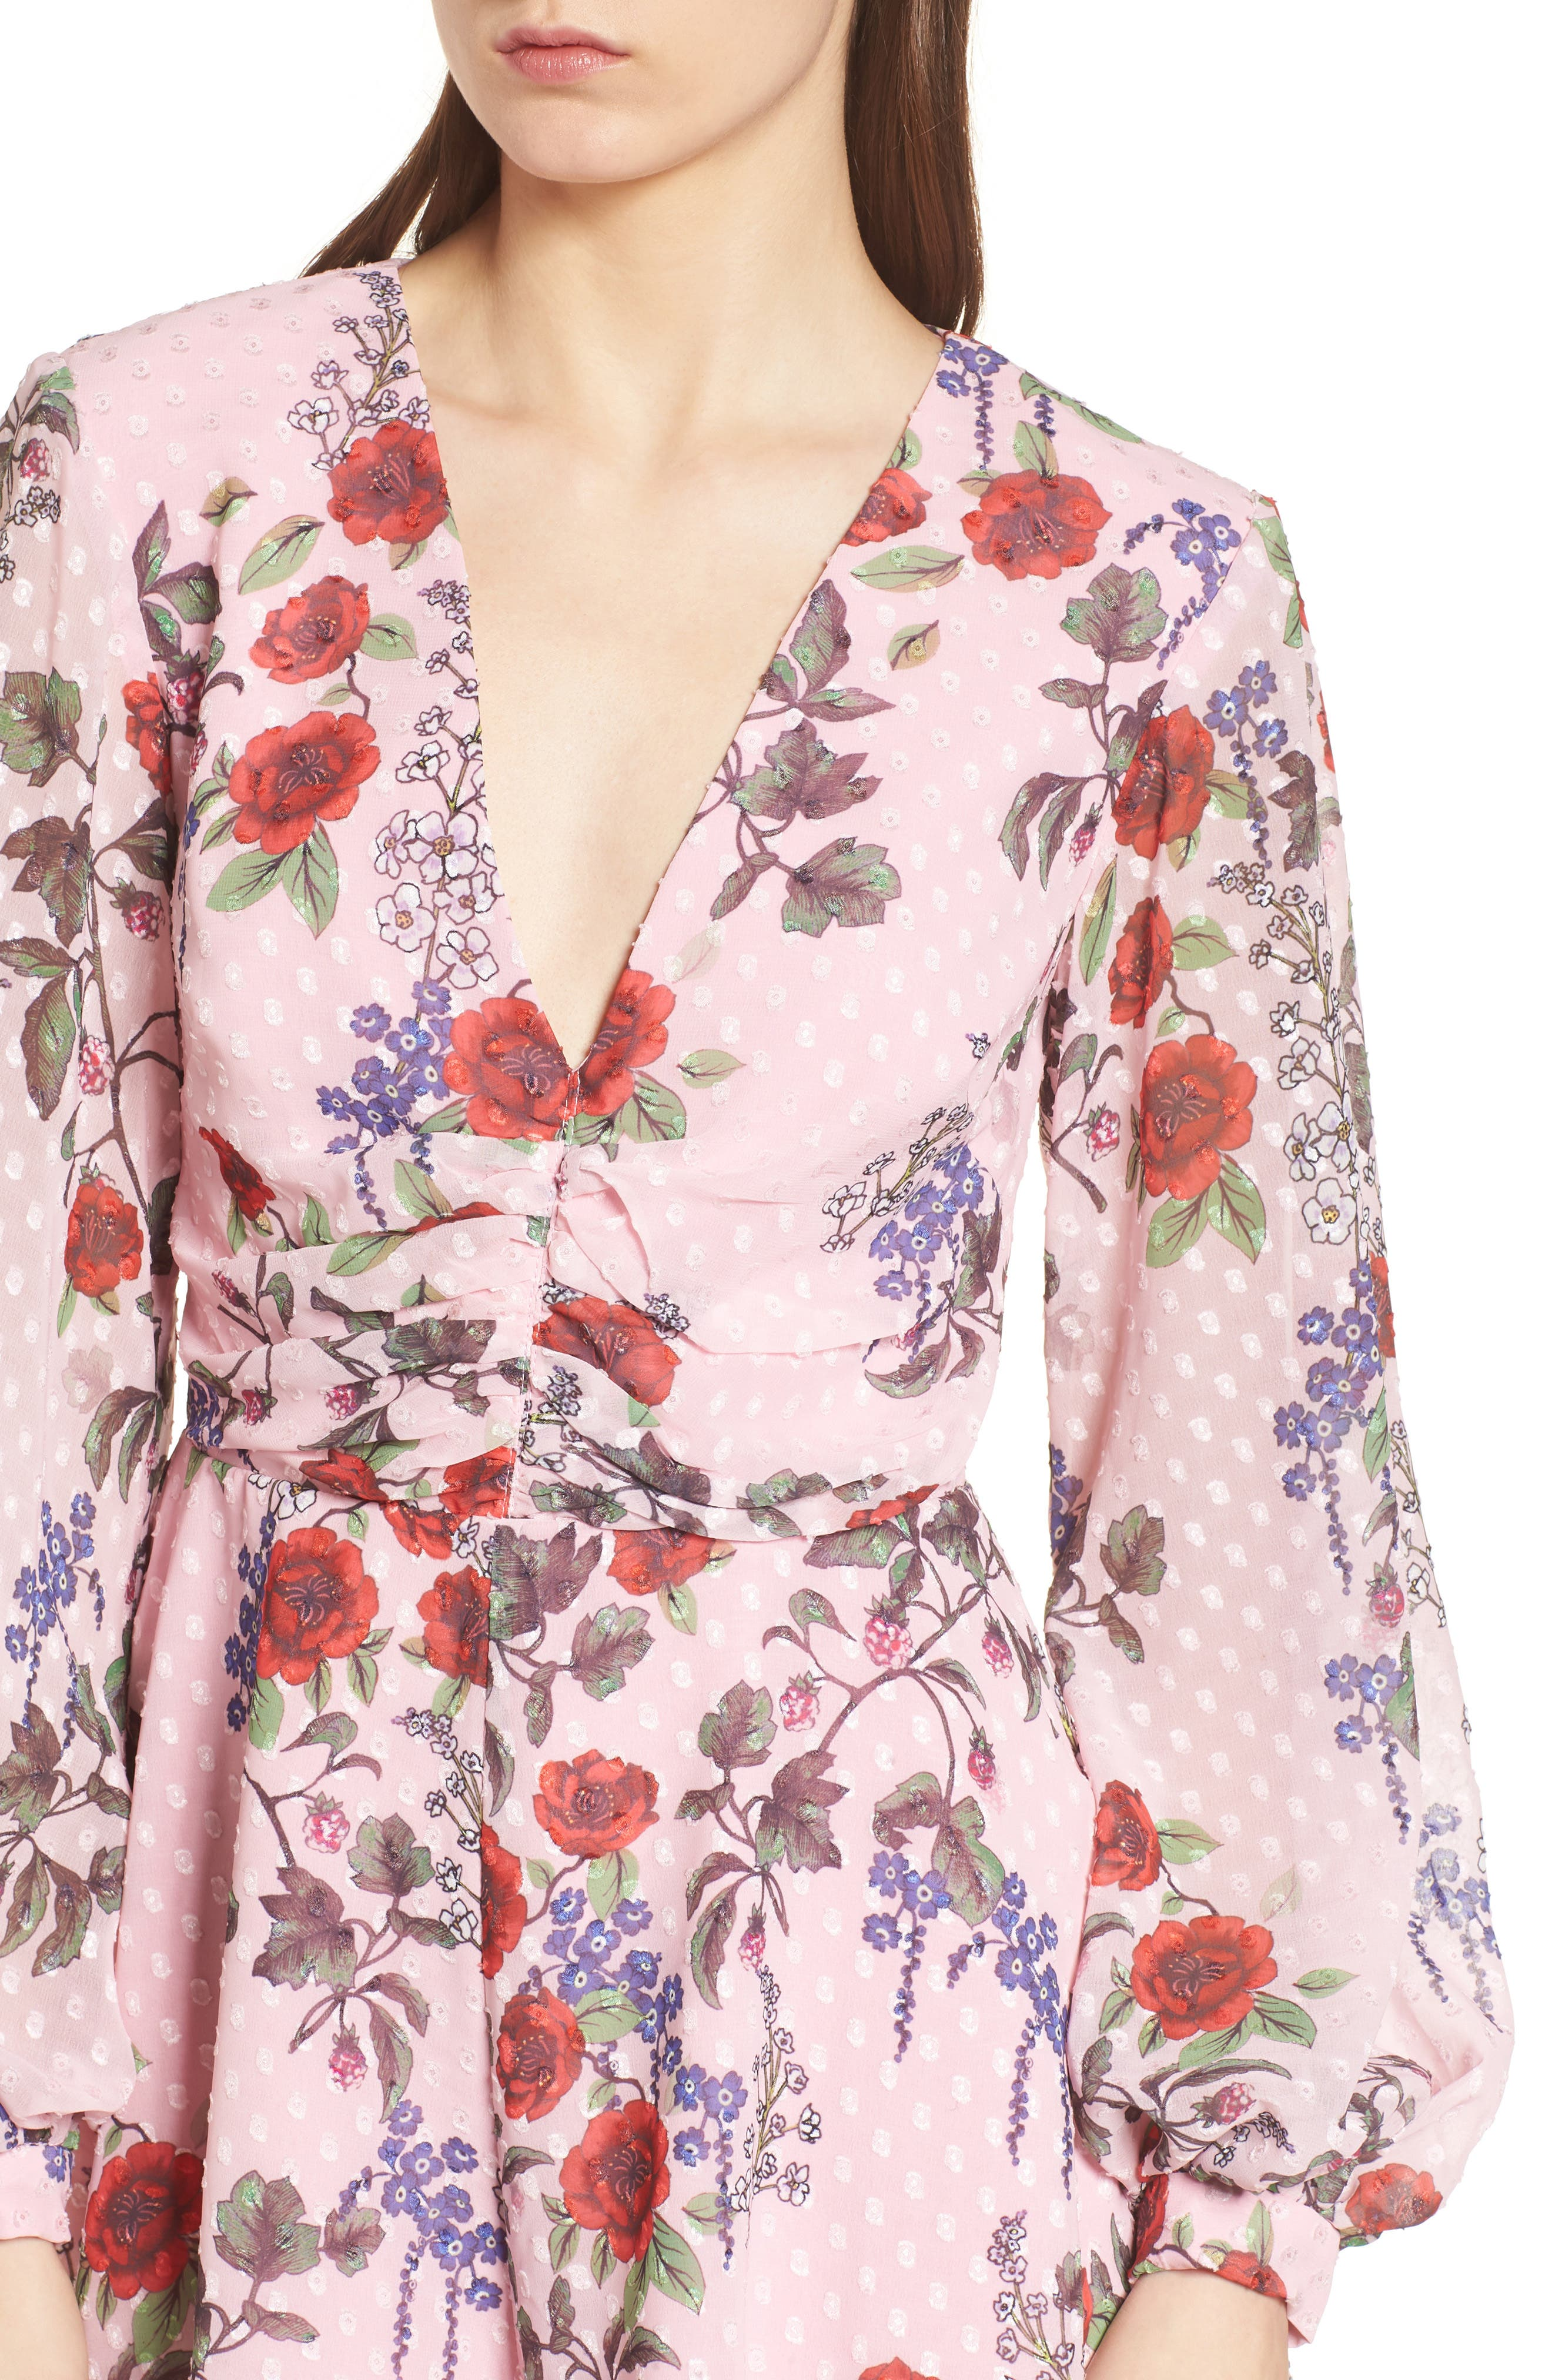 Need You Now Romper,                             Alternate thumbnail 5, color,                             Powder Pink Floral